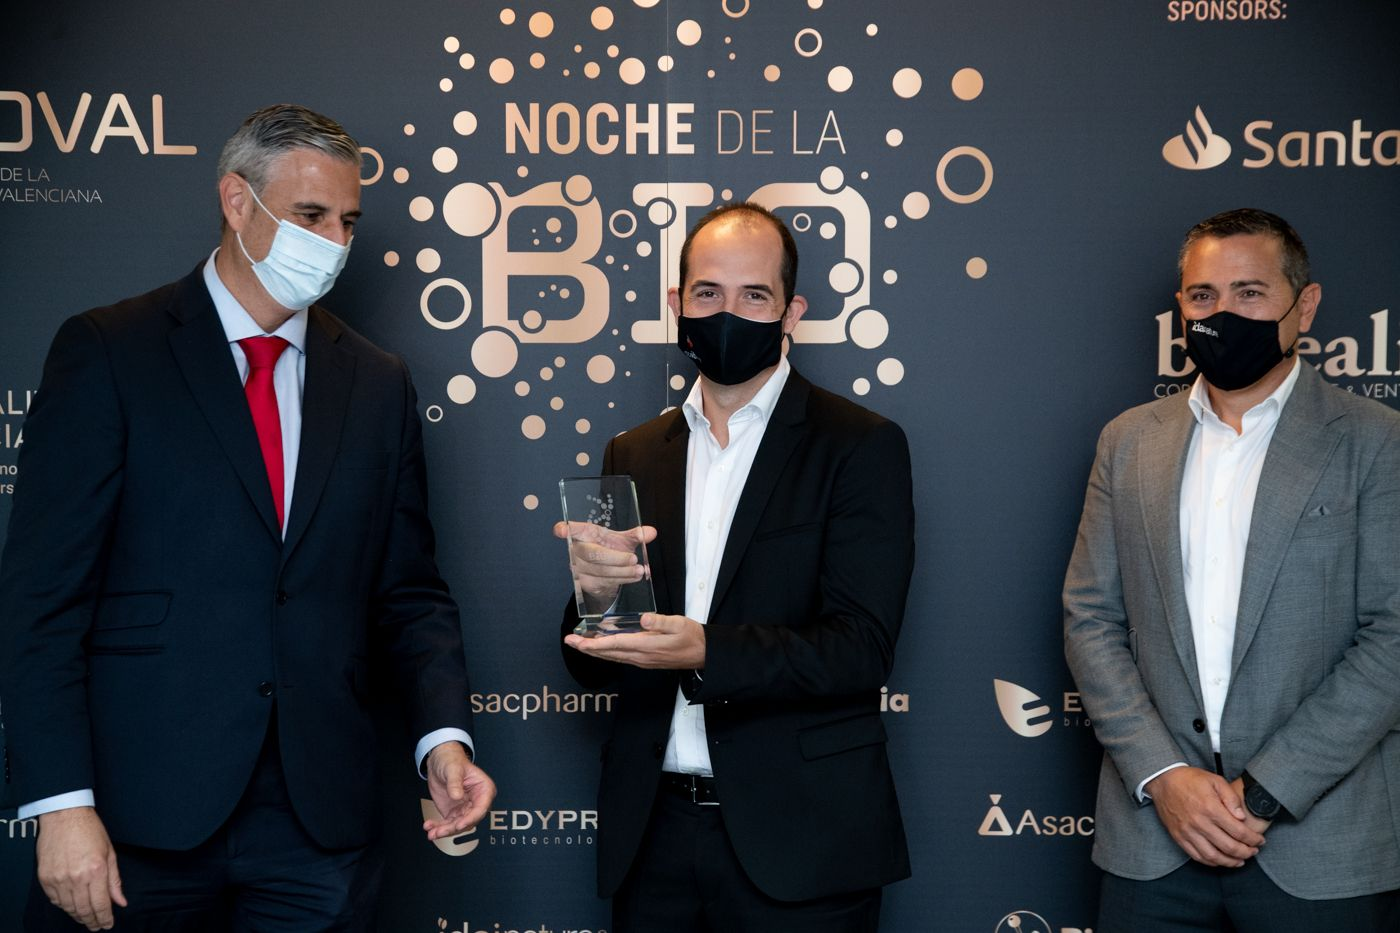 BIOVAL premia a Rithmi, Forest Chemical, Neval y Quibim como mejores firmas biotech del año